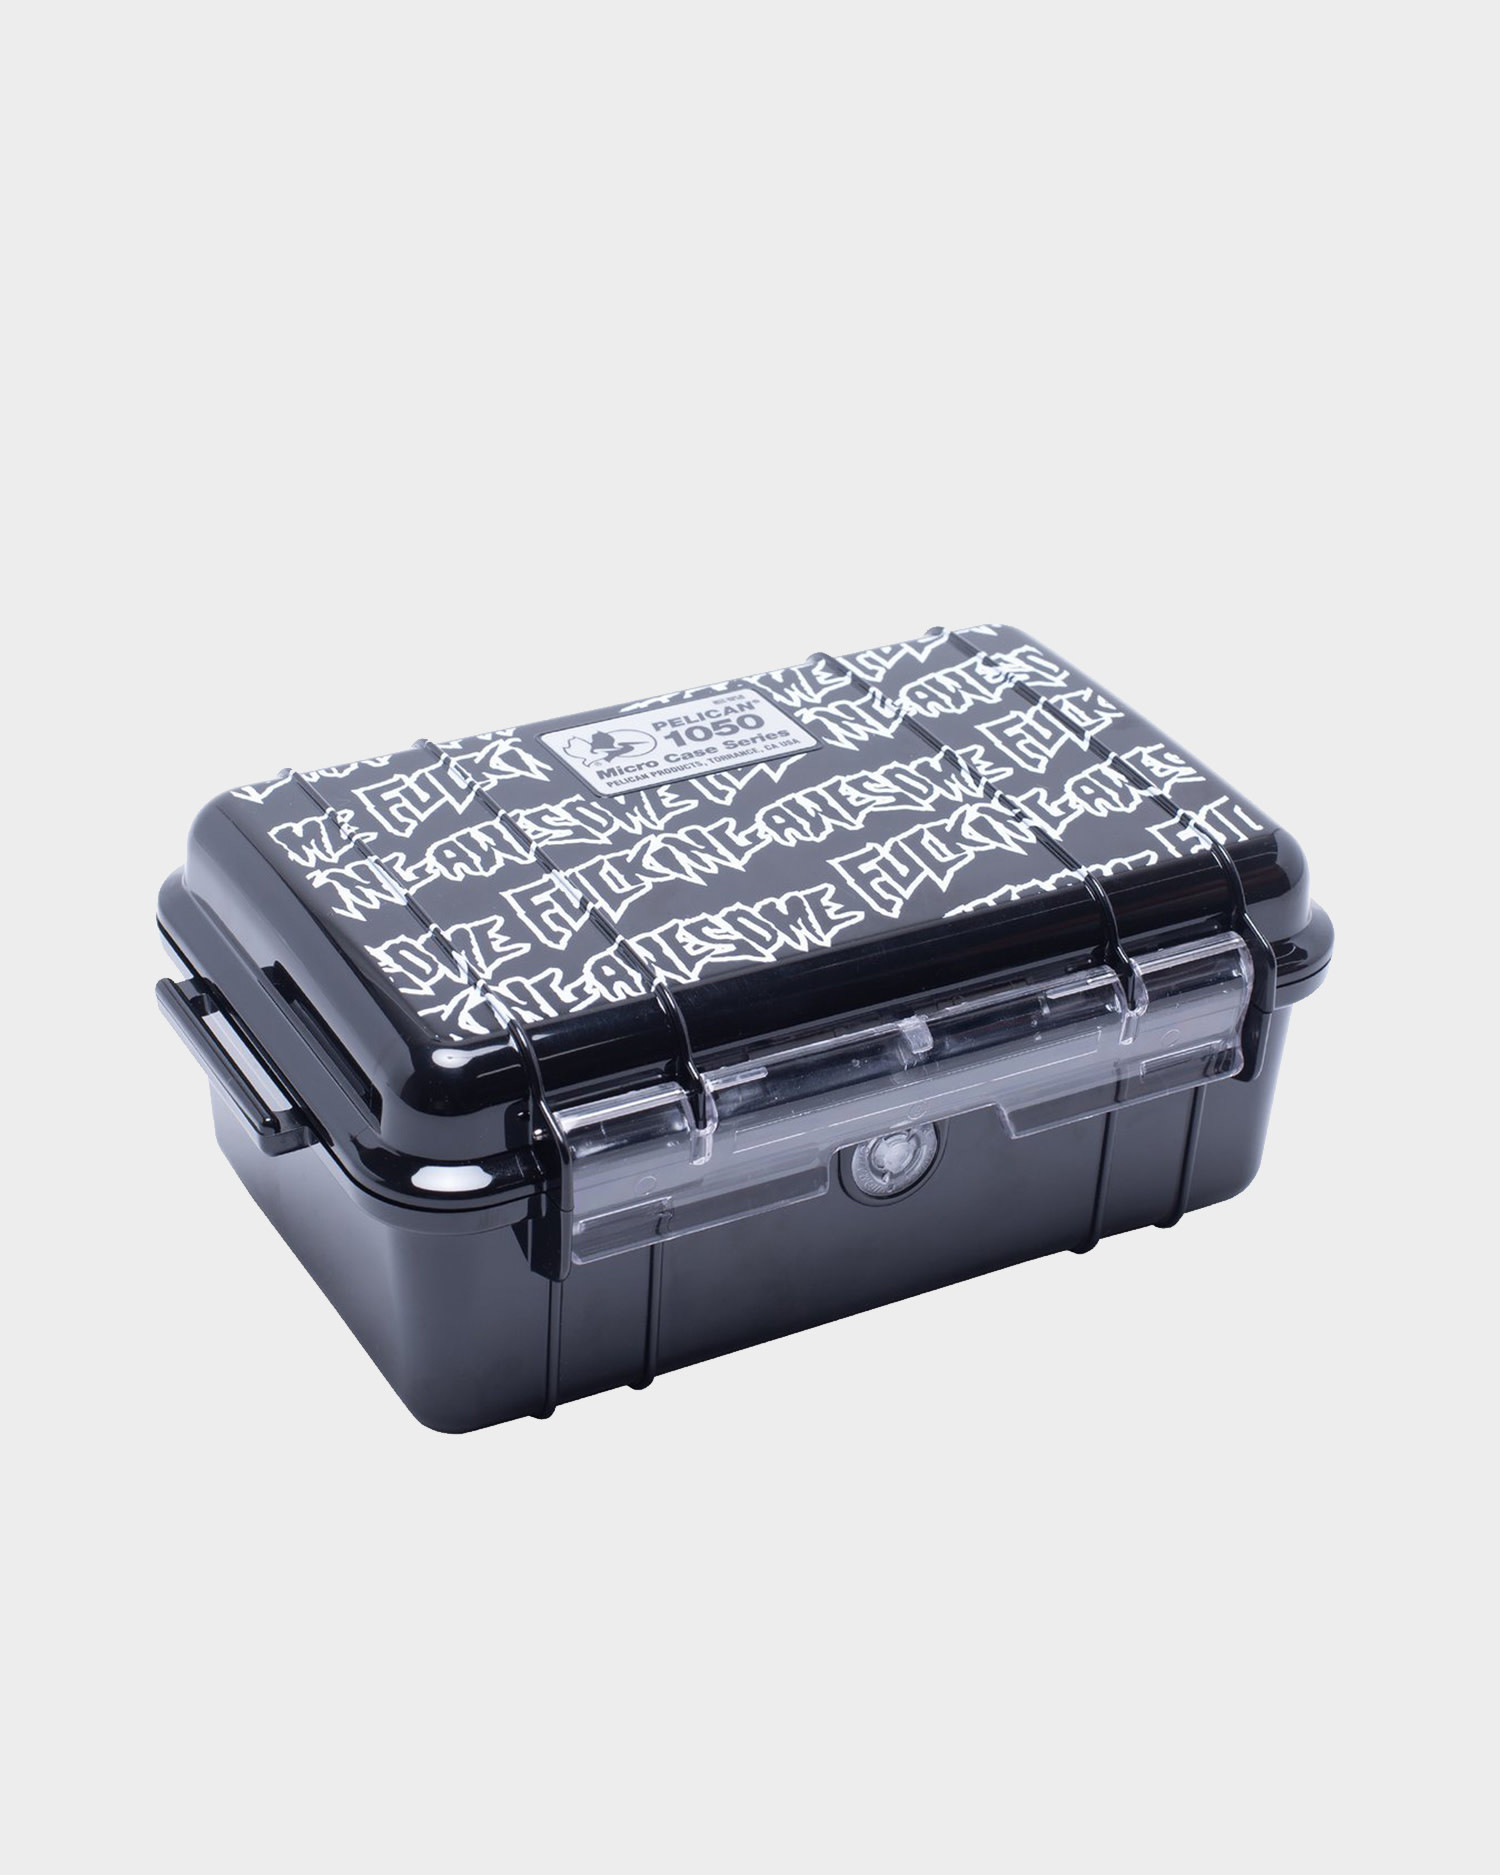 Fucking Awesome Stamp Pelican 1050 Micro Case Stamp Print